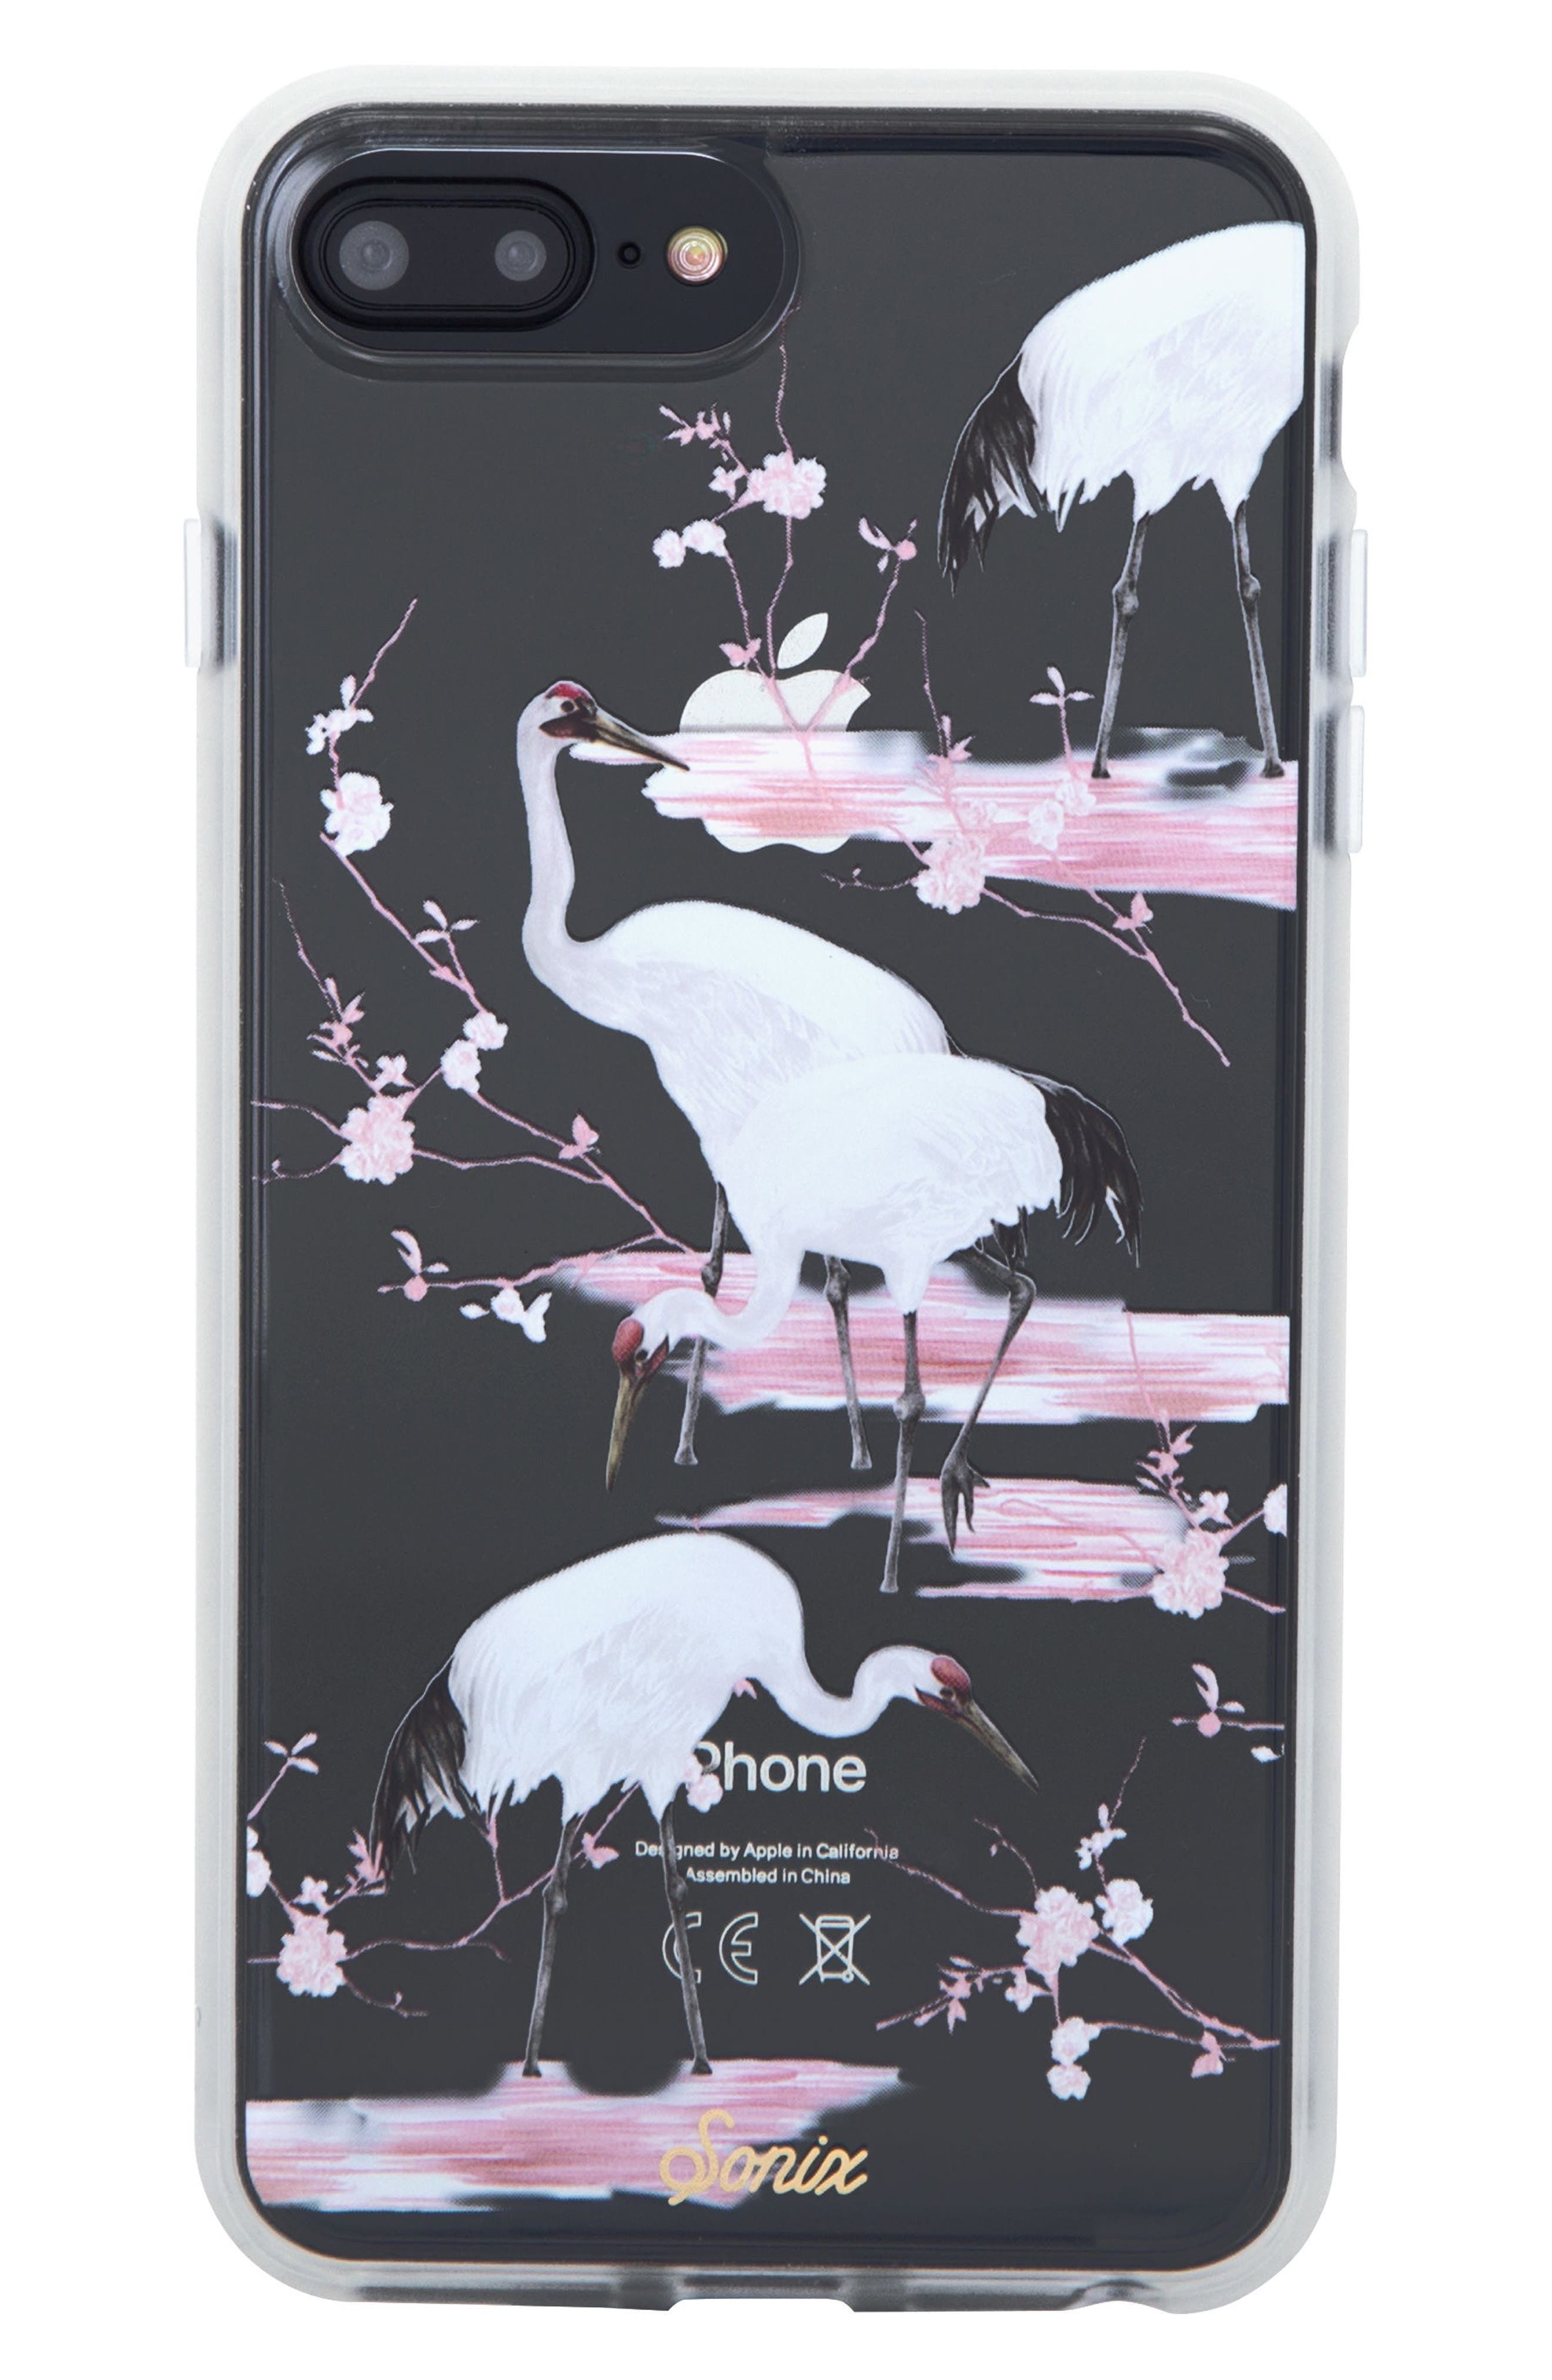 Crane I Phone 6/6s/7/8 Plus Case by Sonix